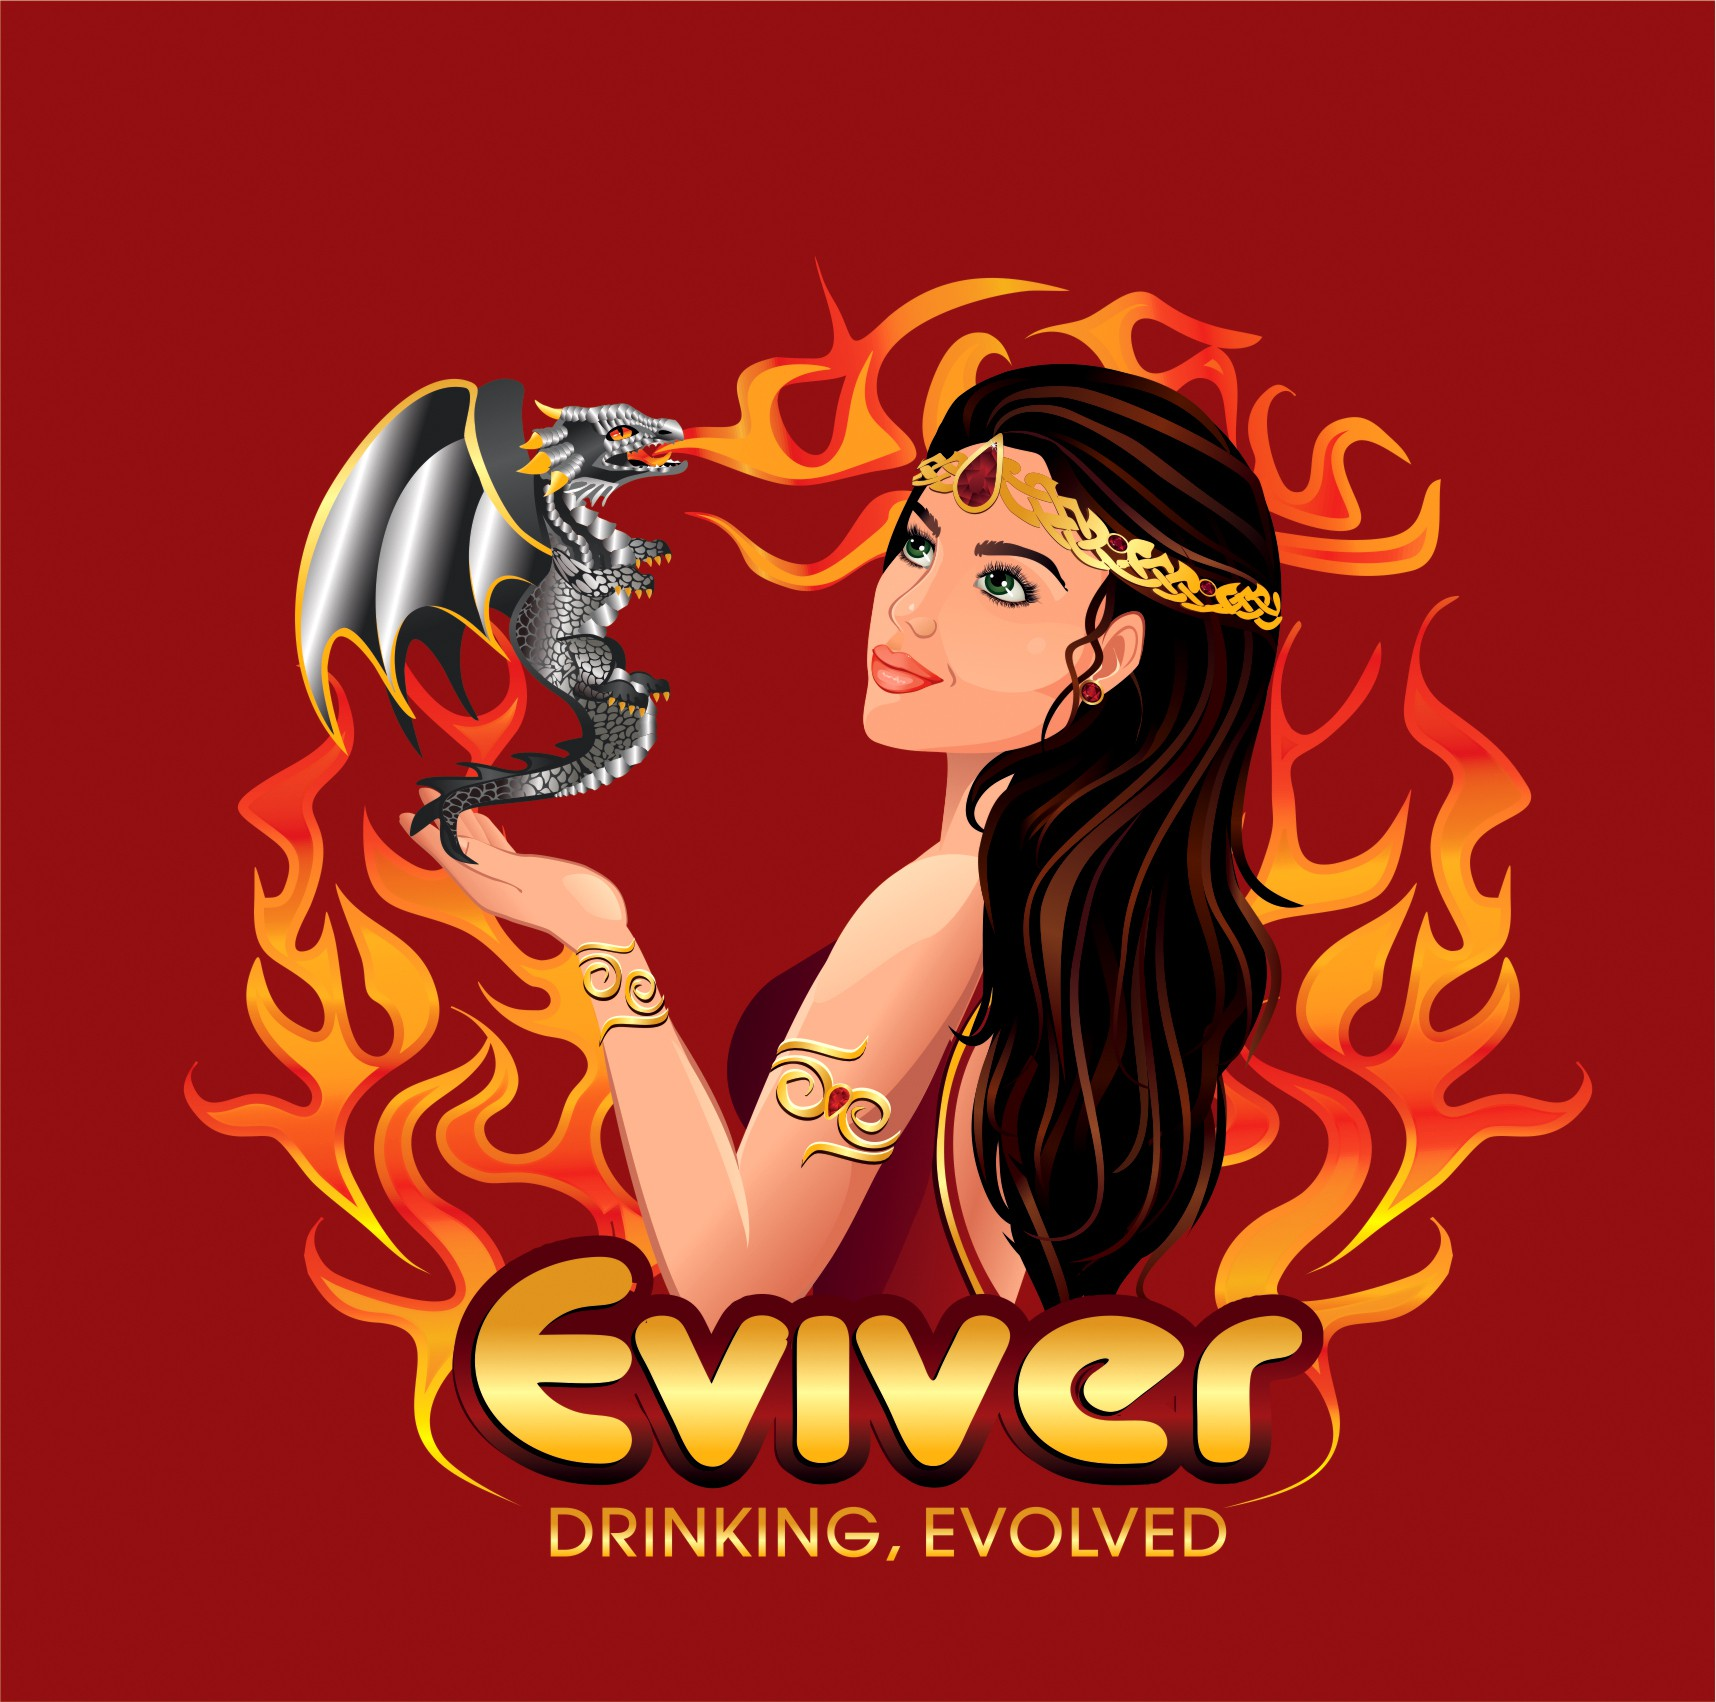 Sexy+Empowered, Smart+Snarky, Assertive+Sophisticated Goddess-like Logo Design Needed for Premium Lifestyle Beverage